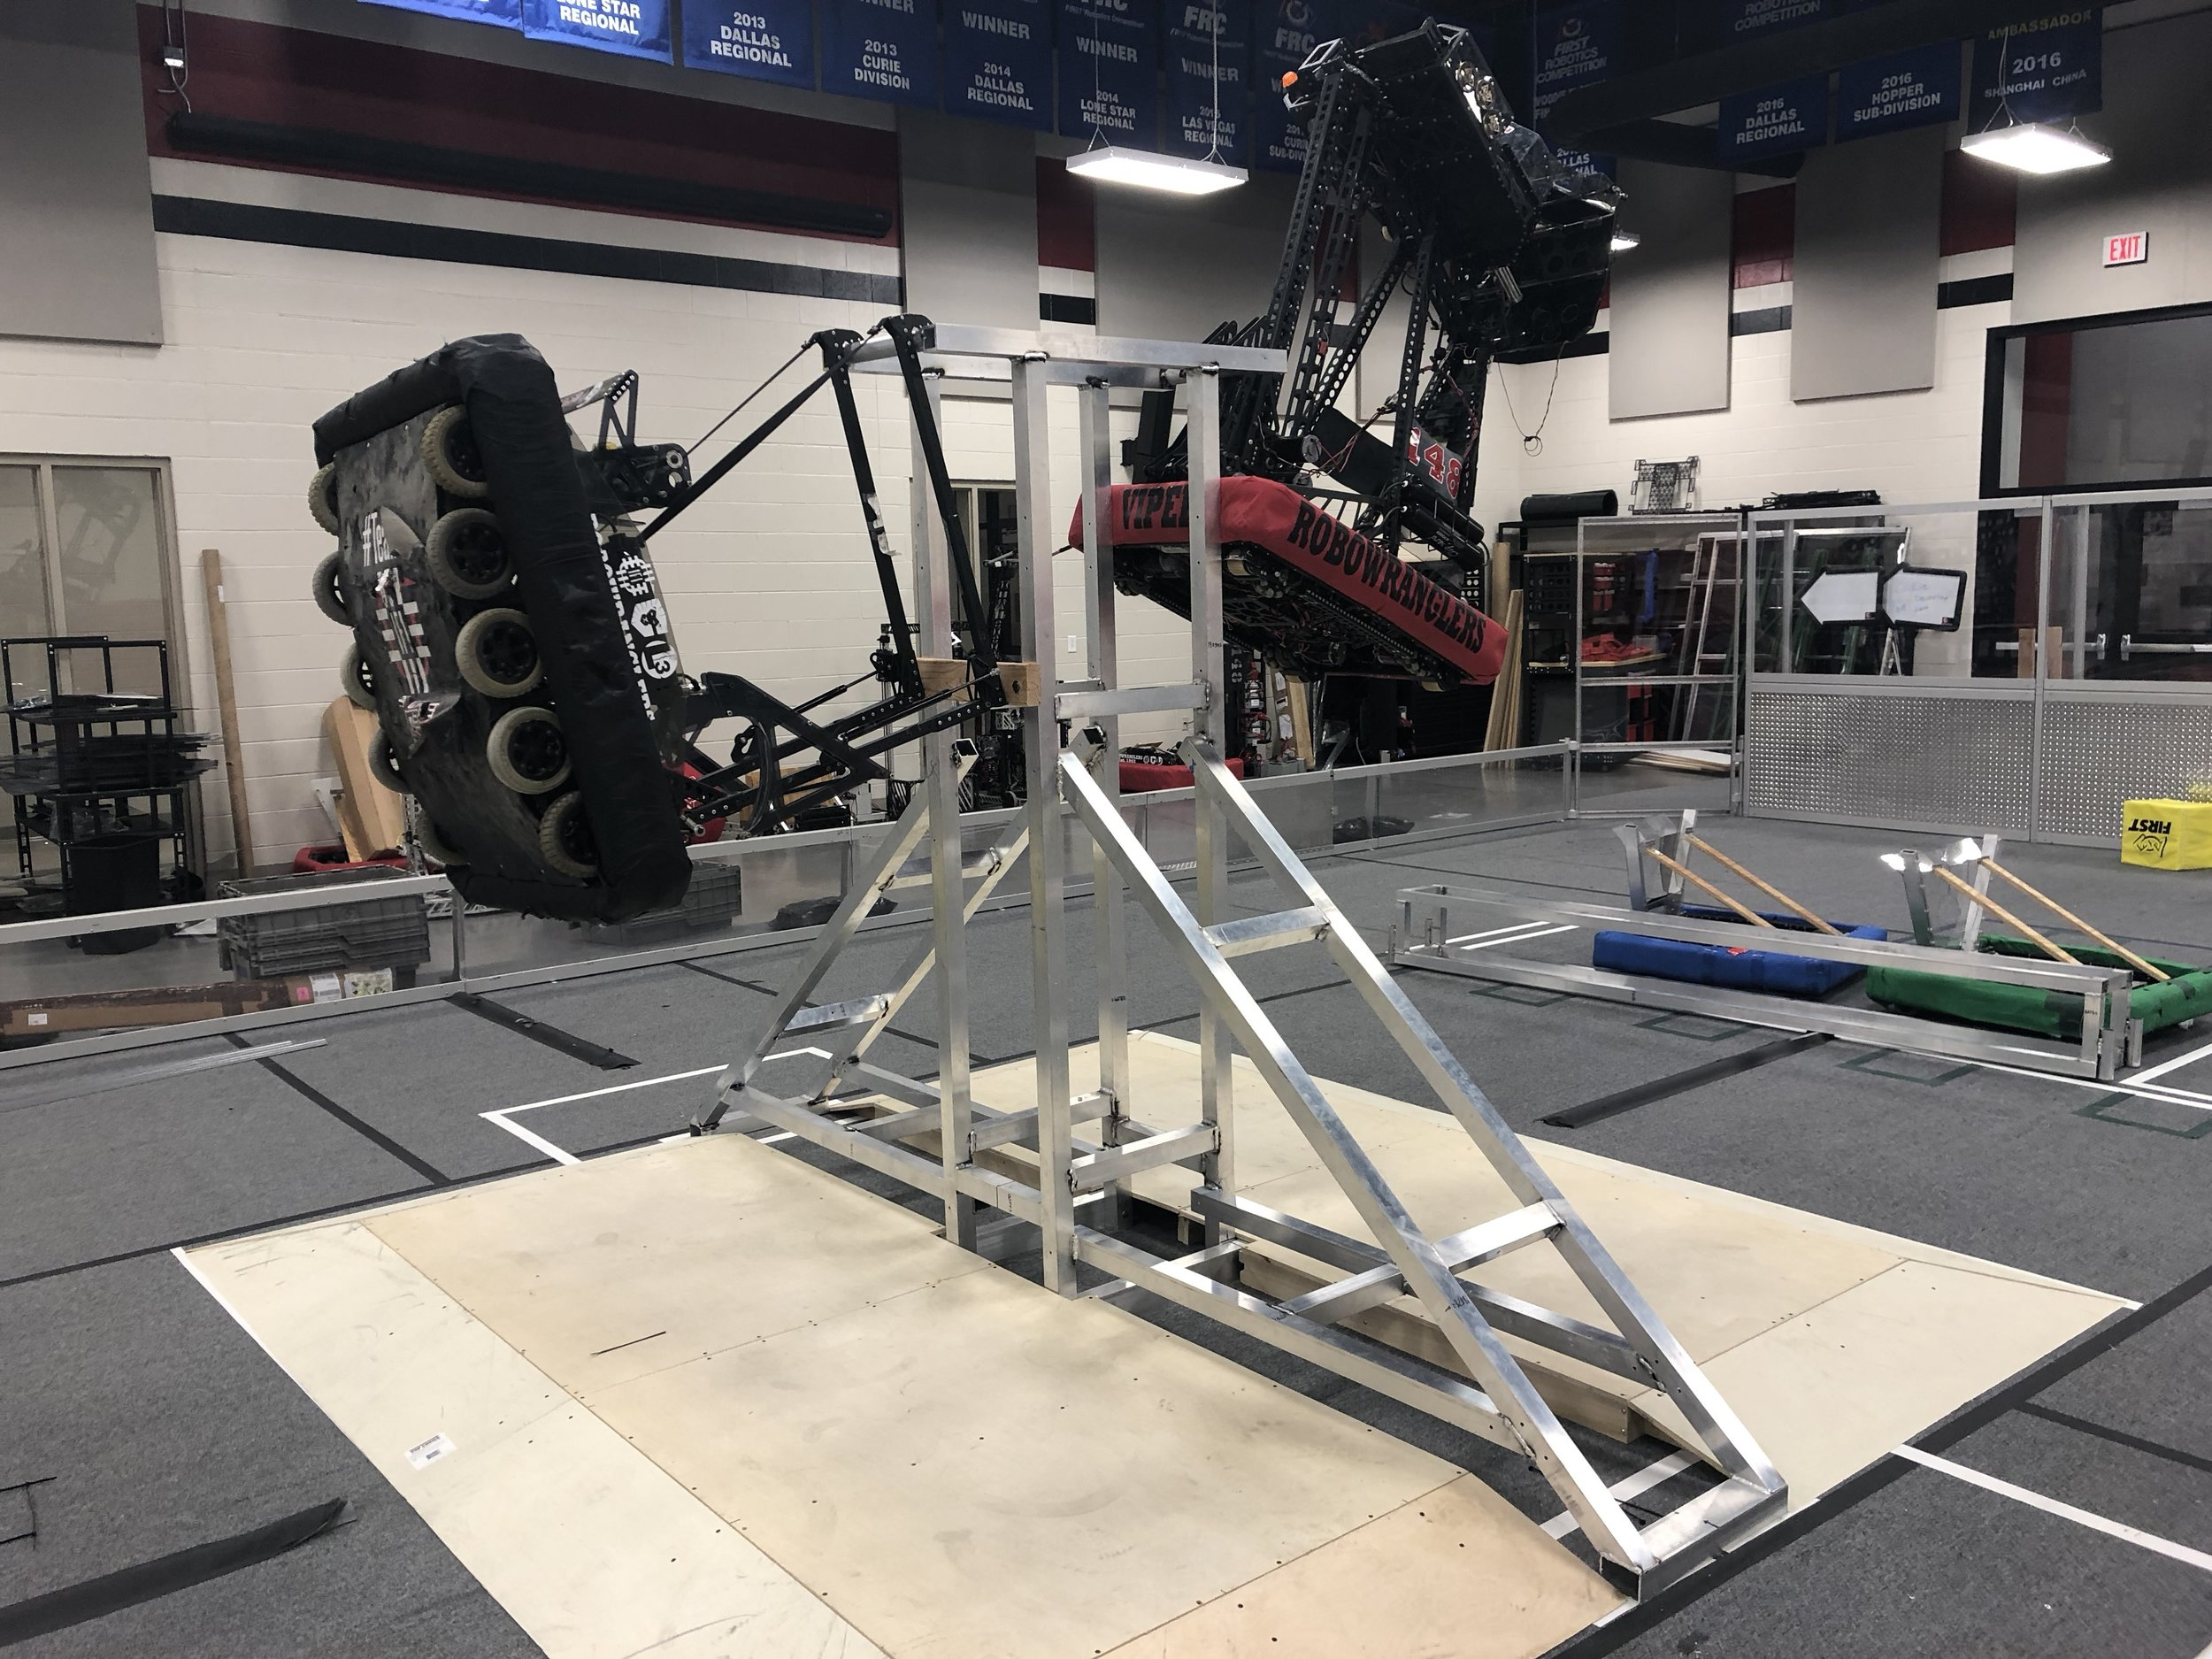 """This bar reserved for Einstein Robots ONLY"" - Our two favorite "" fallers "" hanging around showing everyone they still know how to party.  Does the 2018 Robowrangler machine share some climber-DNA with one of these bad boys?"